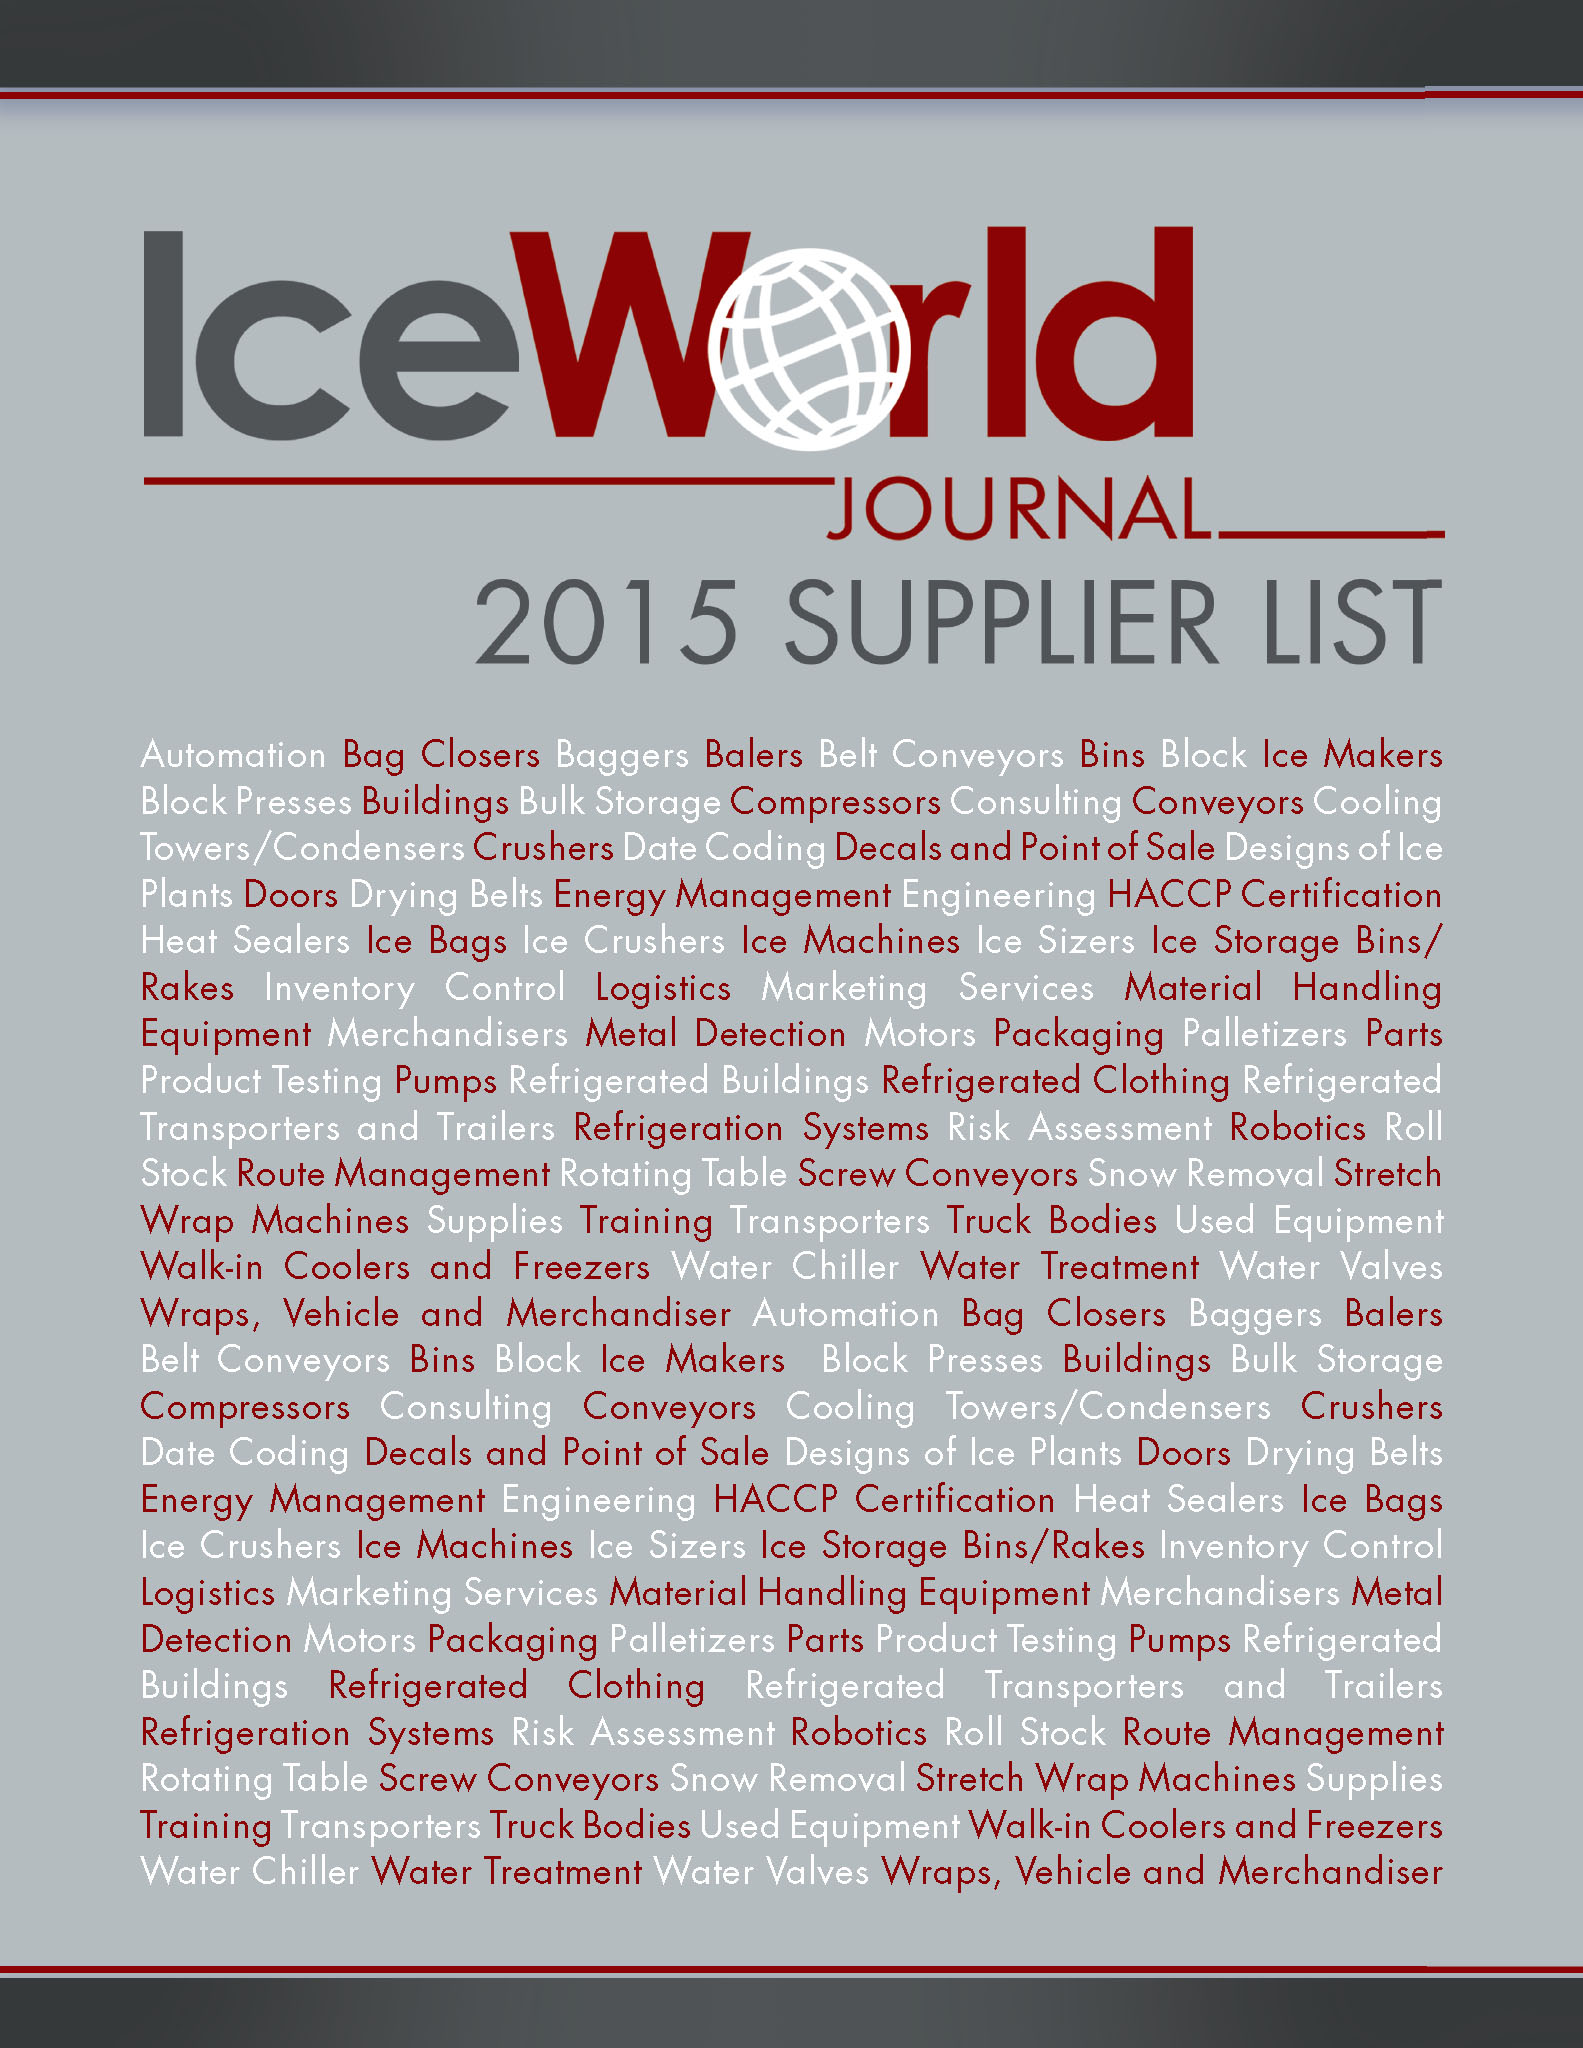 Ice World Journal The International Publication of the Packaged Ice Industry Supplier List